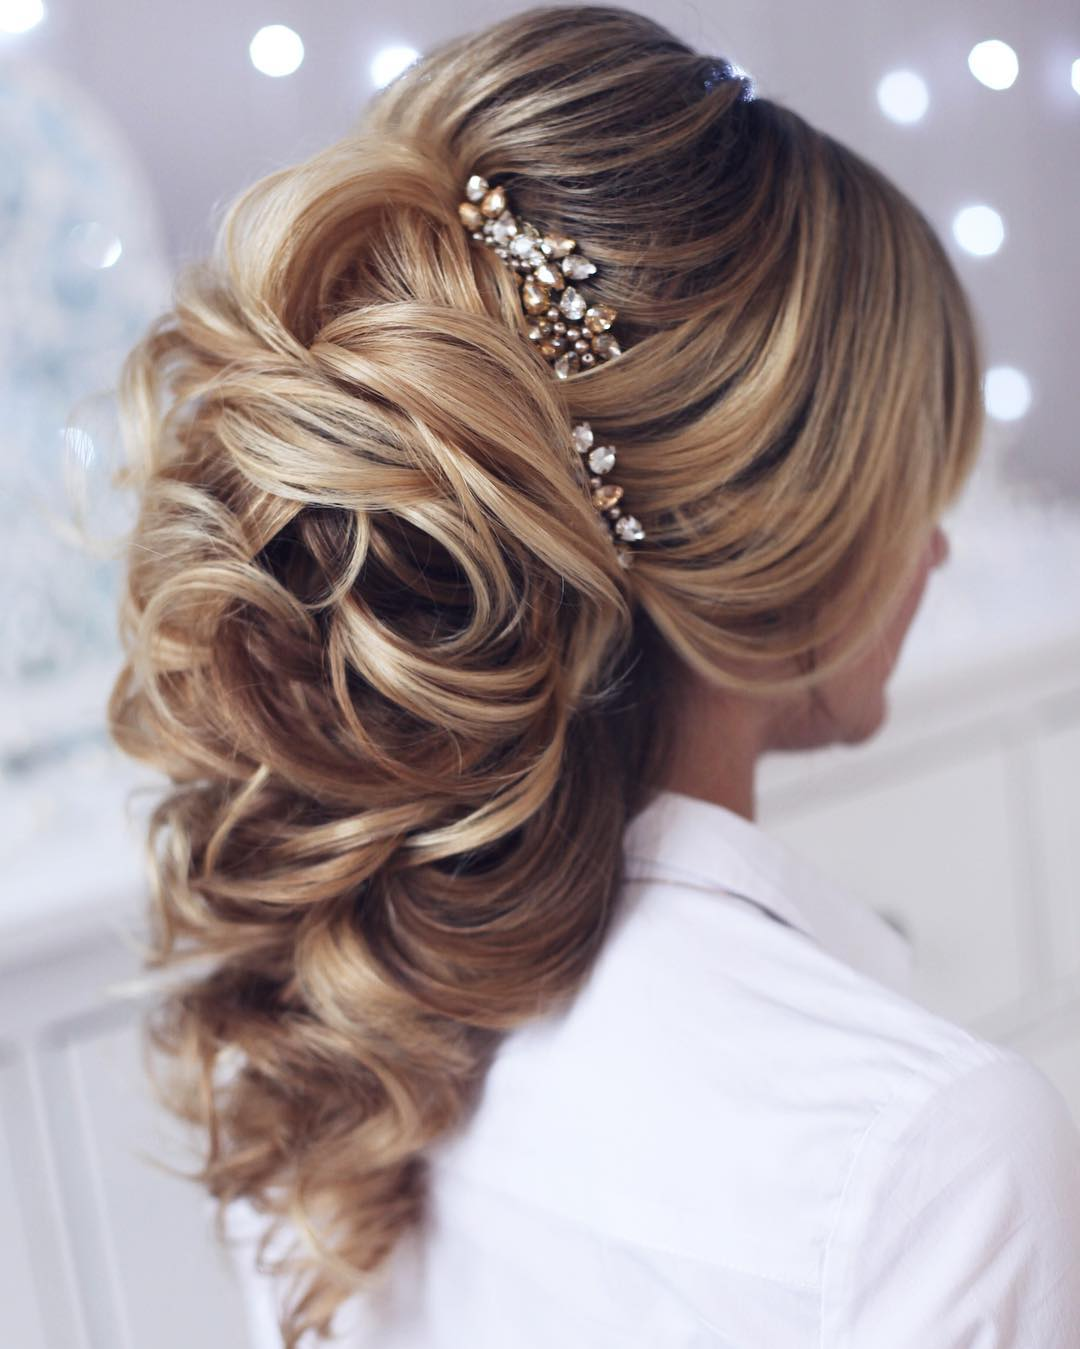 30 Beach Wedding Hairstyles Ideas Designs: 10 Lavish Wedding Hairstyles For Long Hair